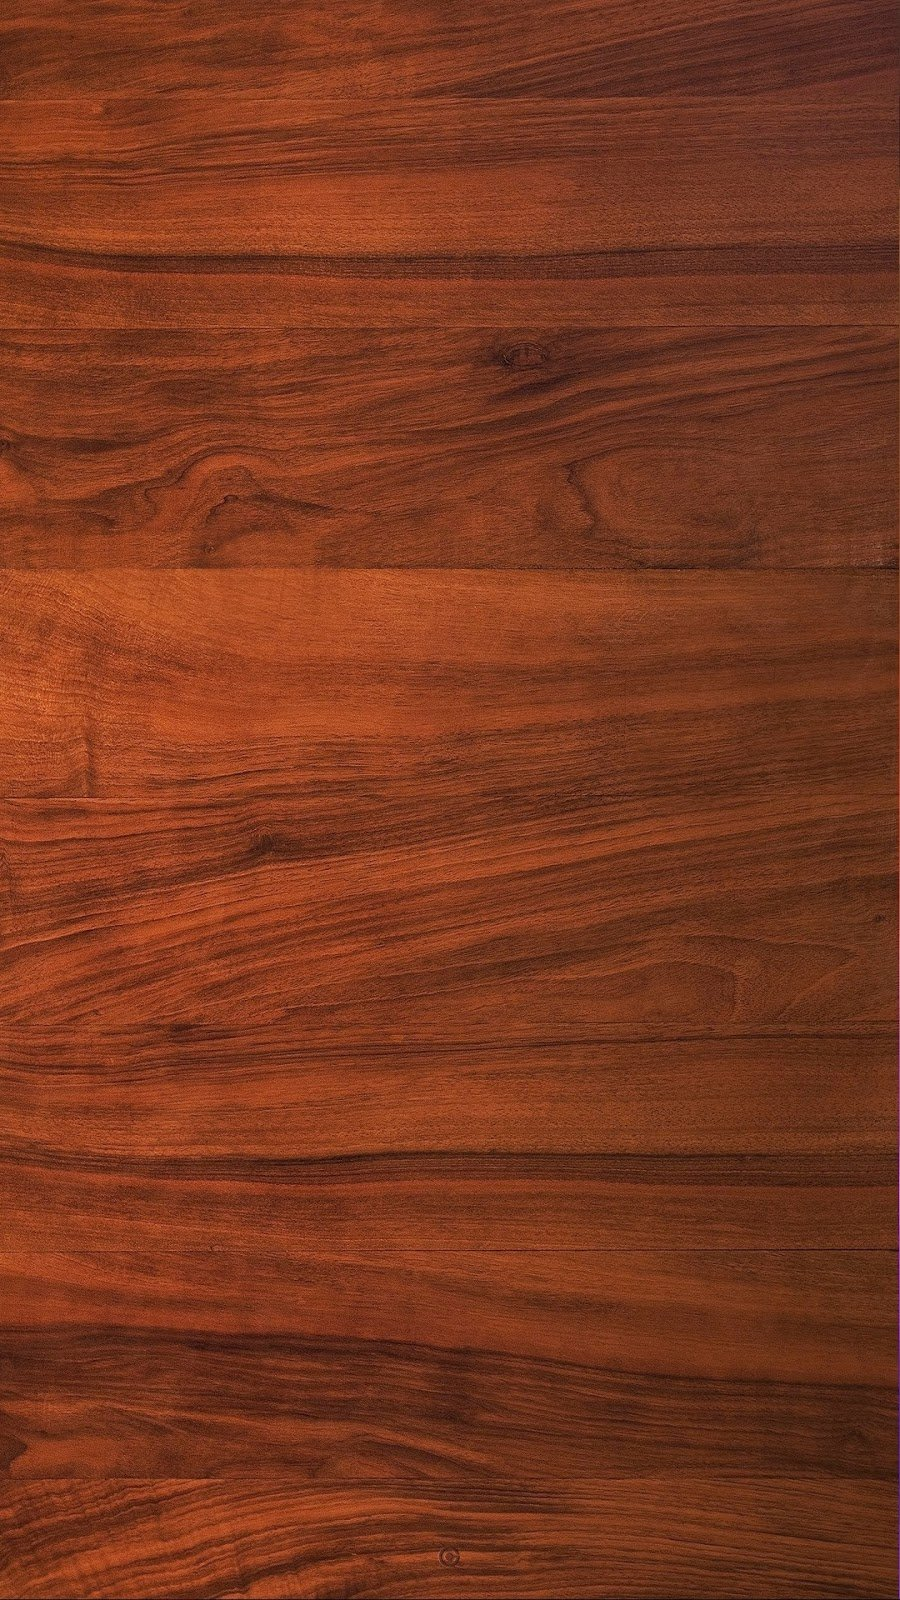 Cherry Wood Pattern Texture iPhone 6 Plus HD Wallpaper 900x1600